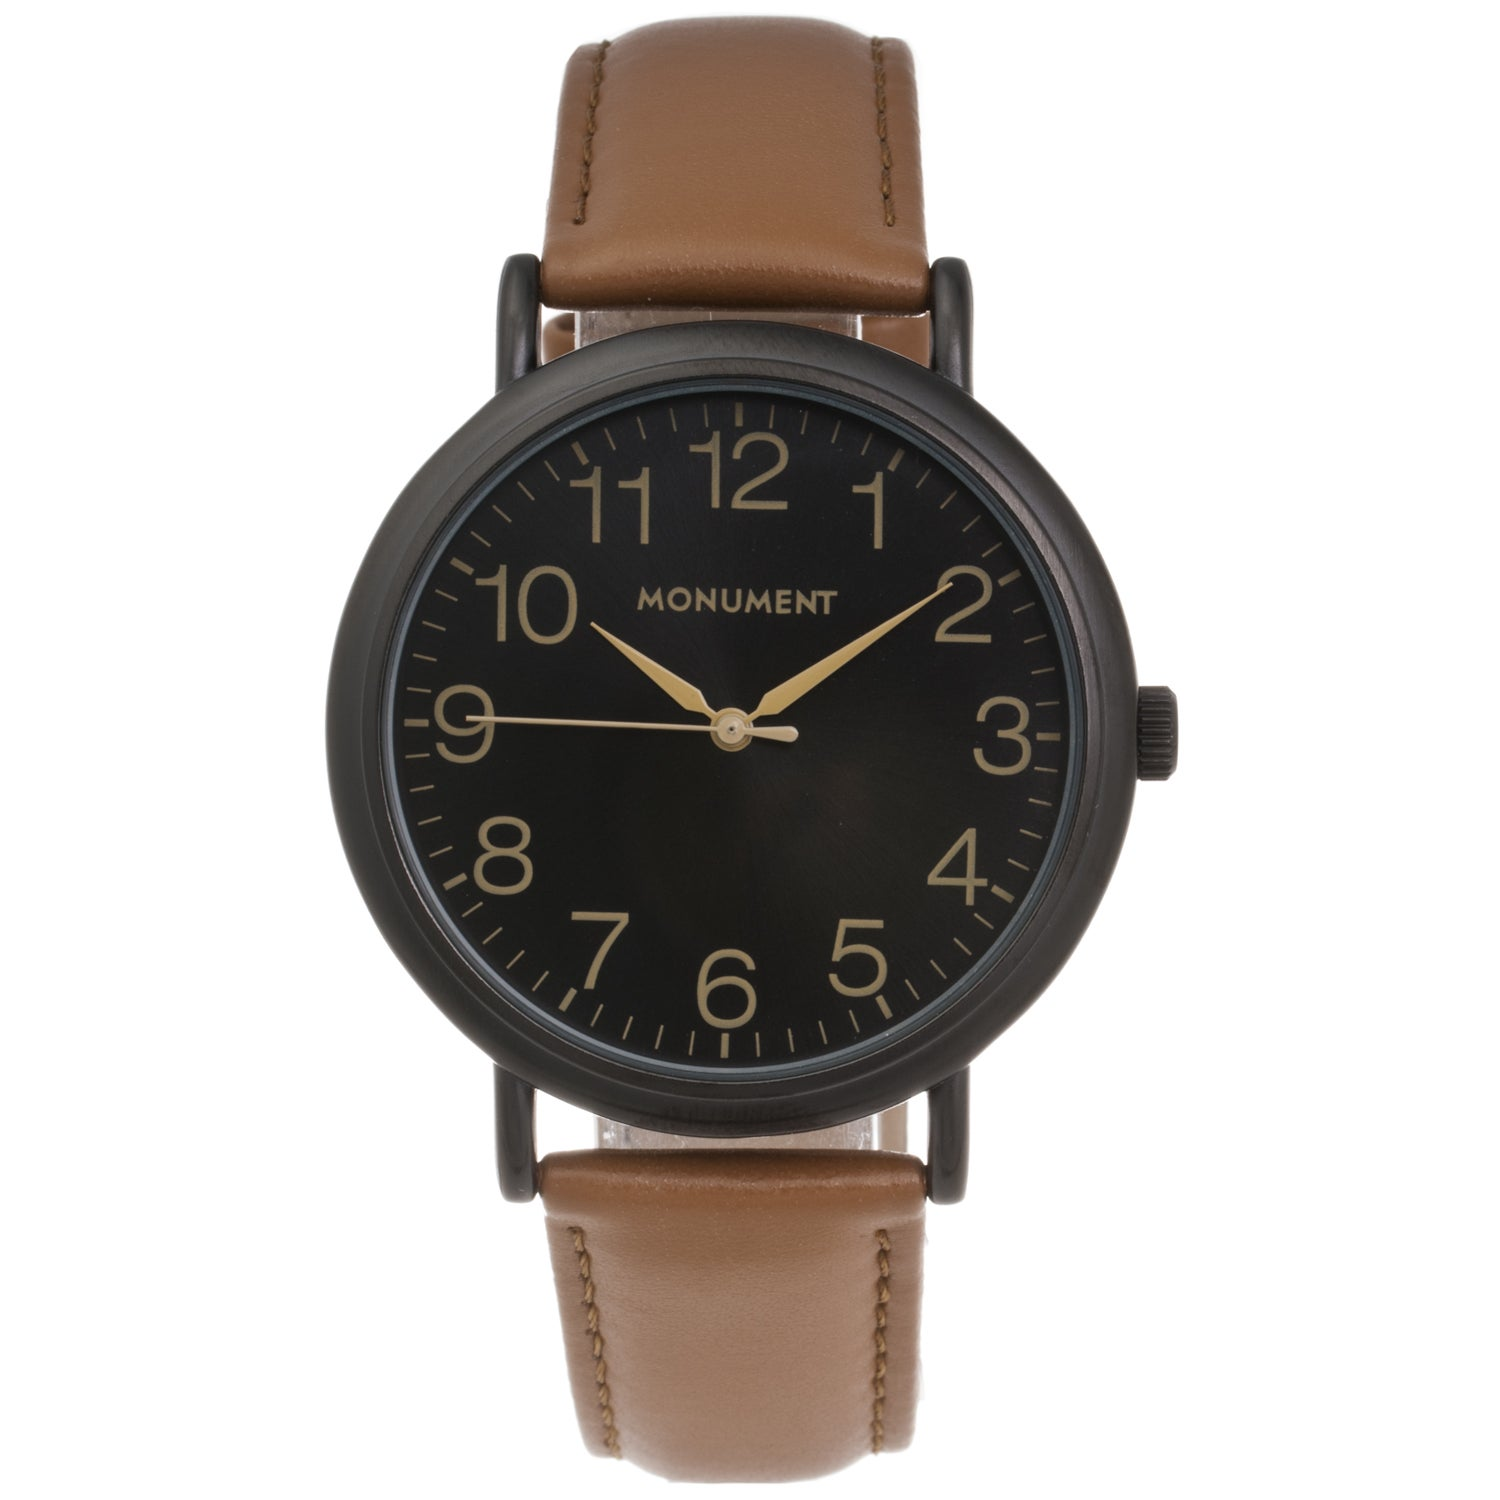 Monument Men's Synthetic Leather Strap Analog Watch